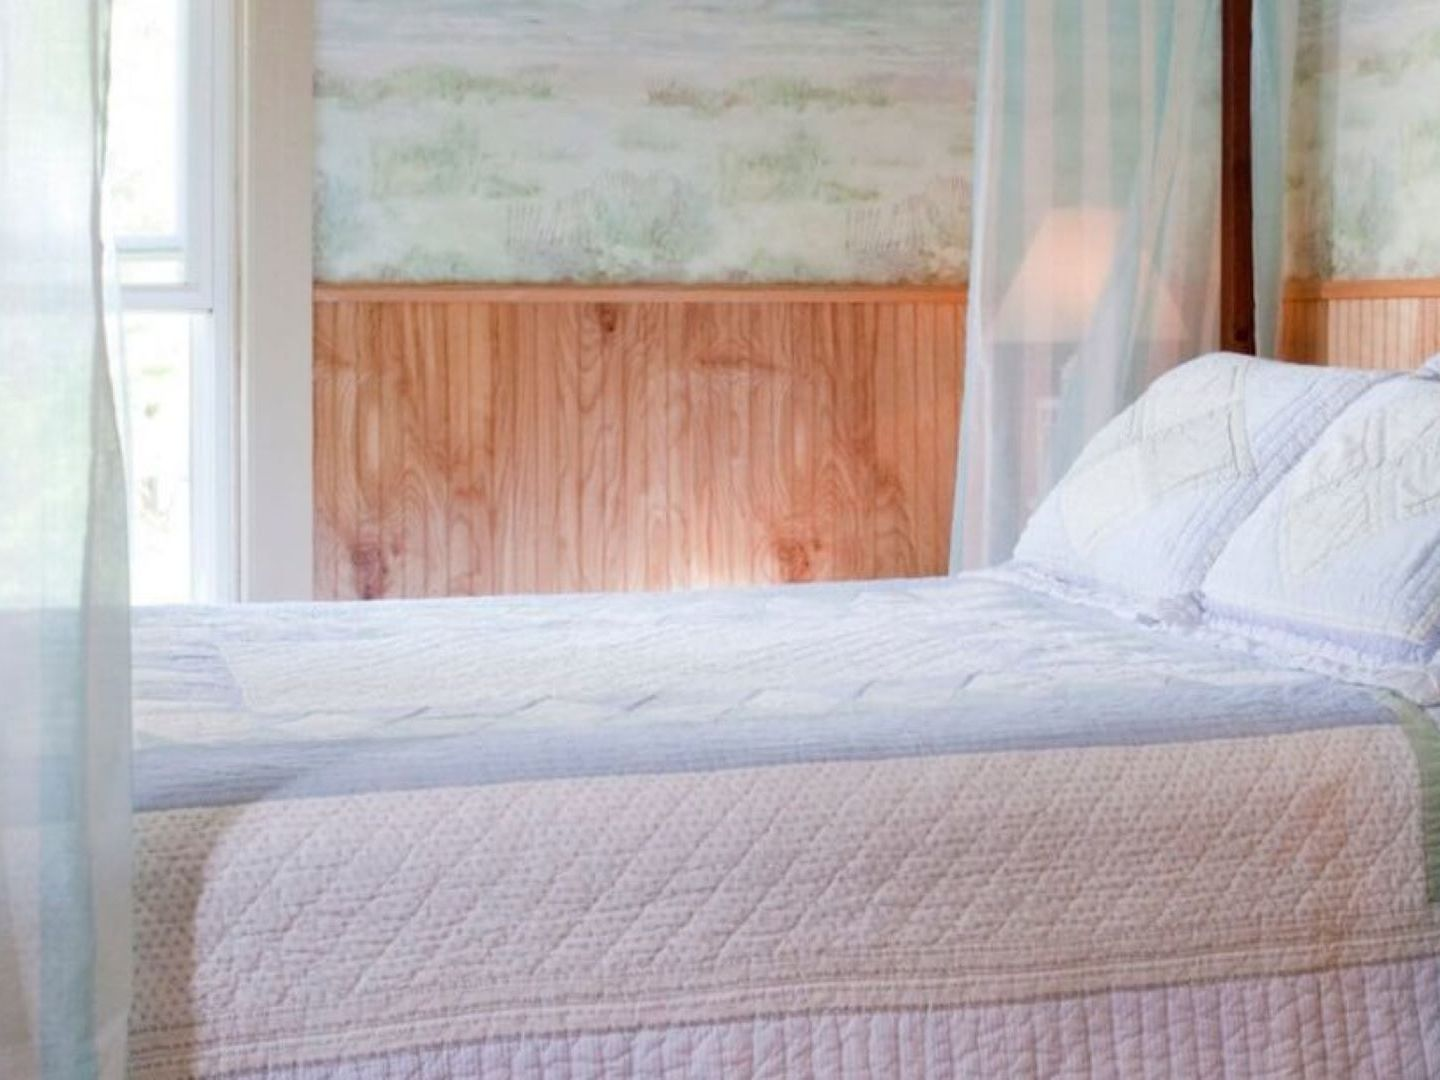 A made bed in a bedroom next to a window at Blueberry Cove Inn.